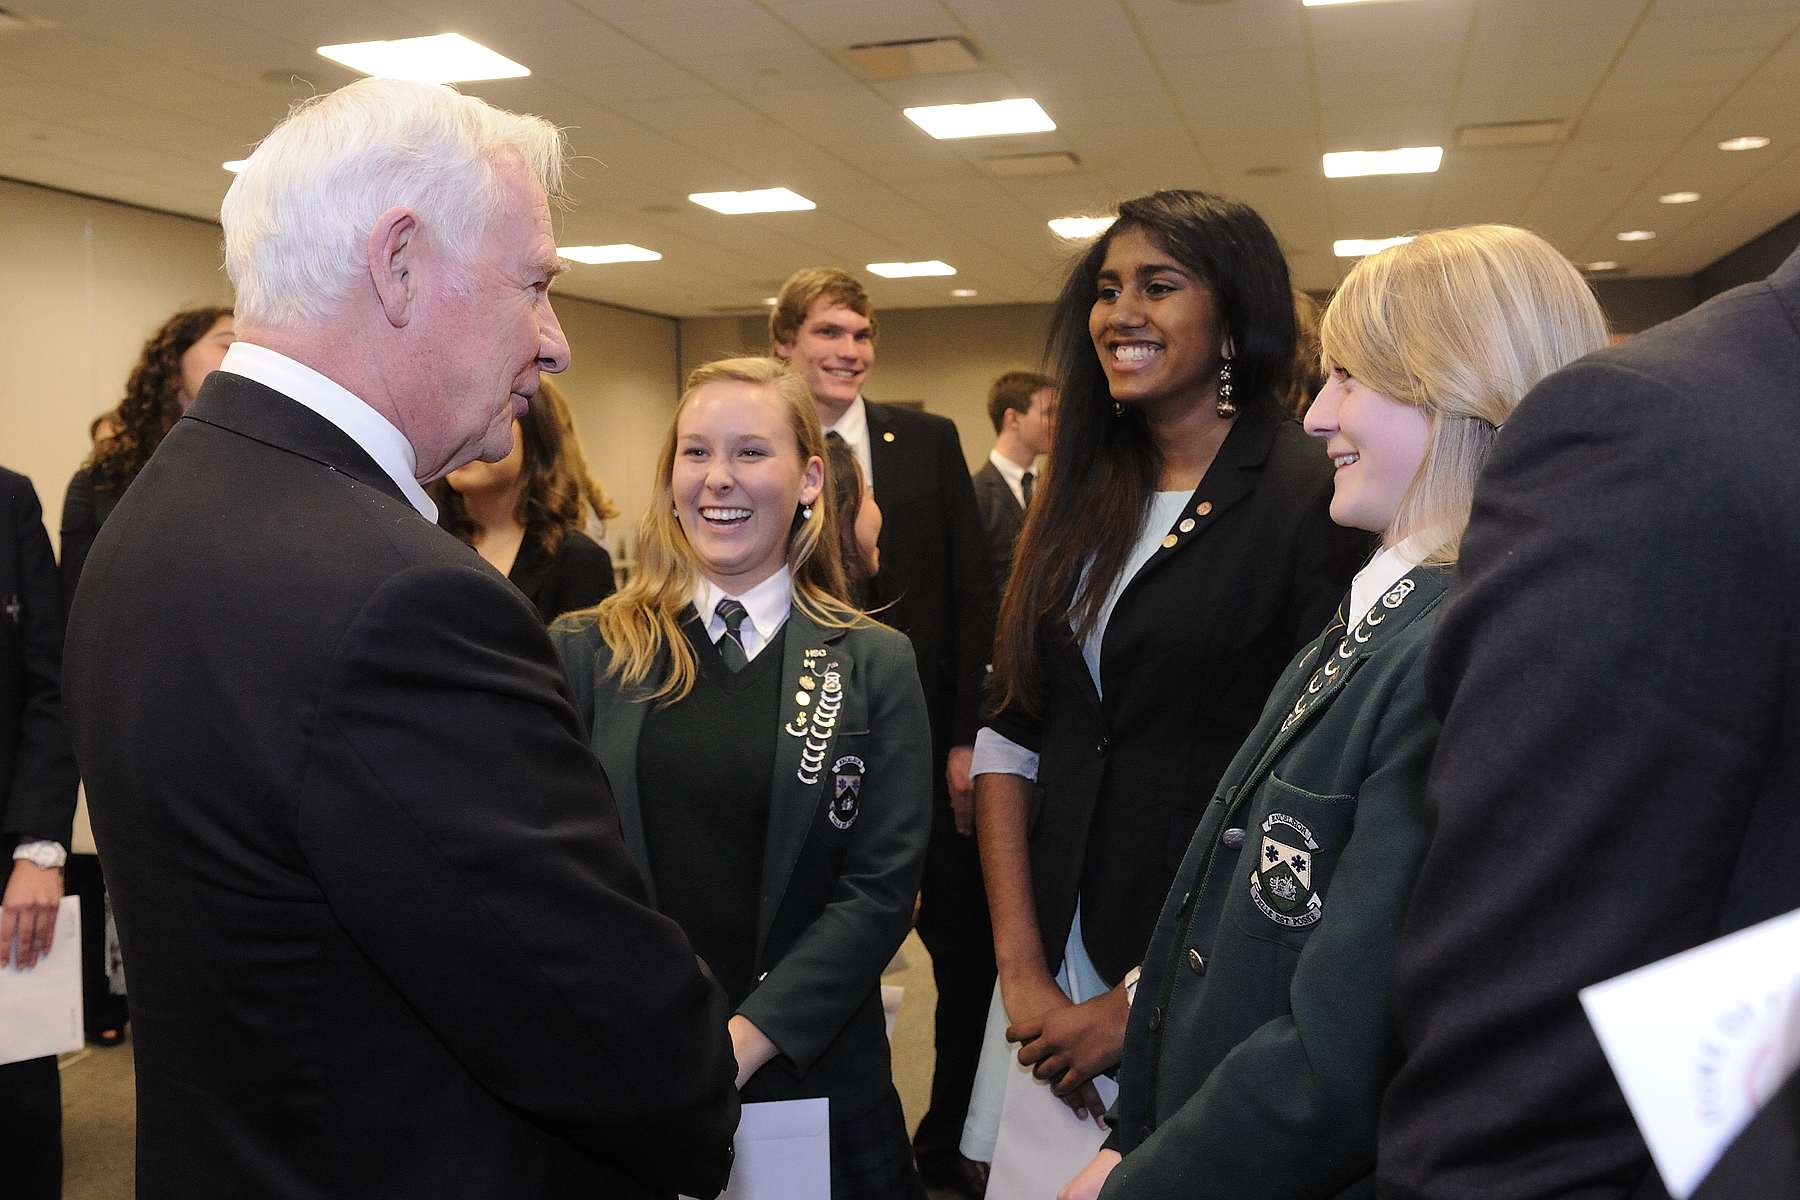 The Governor General met with some recipients following the ceremony.